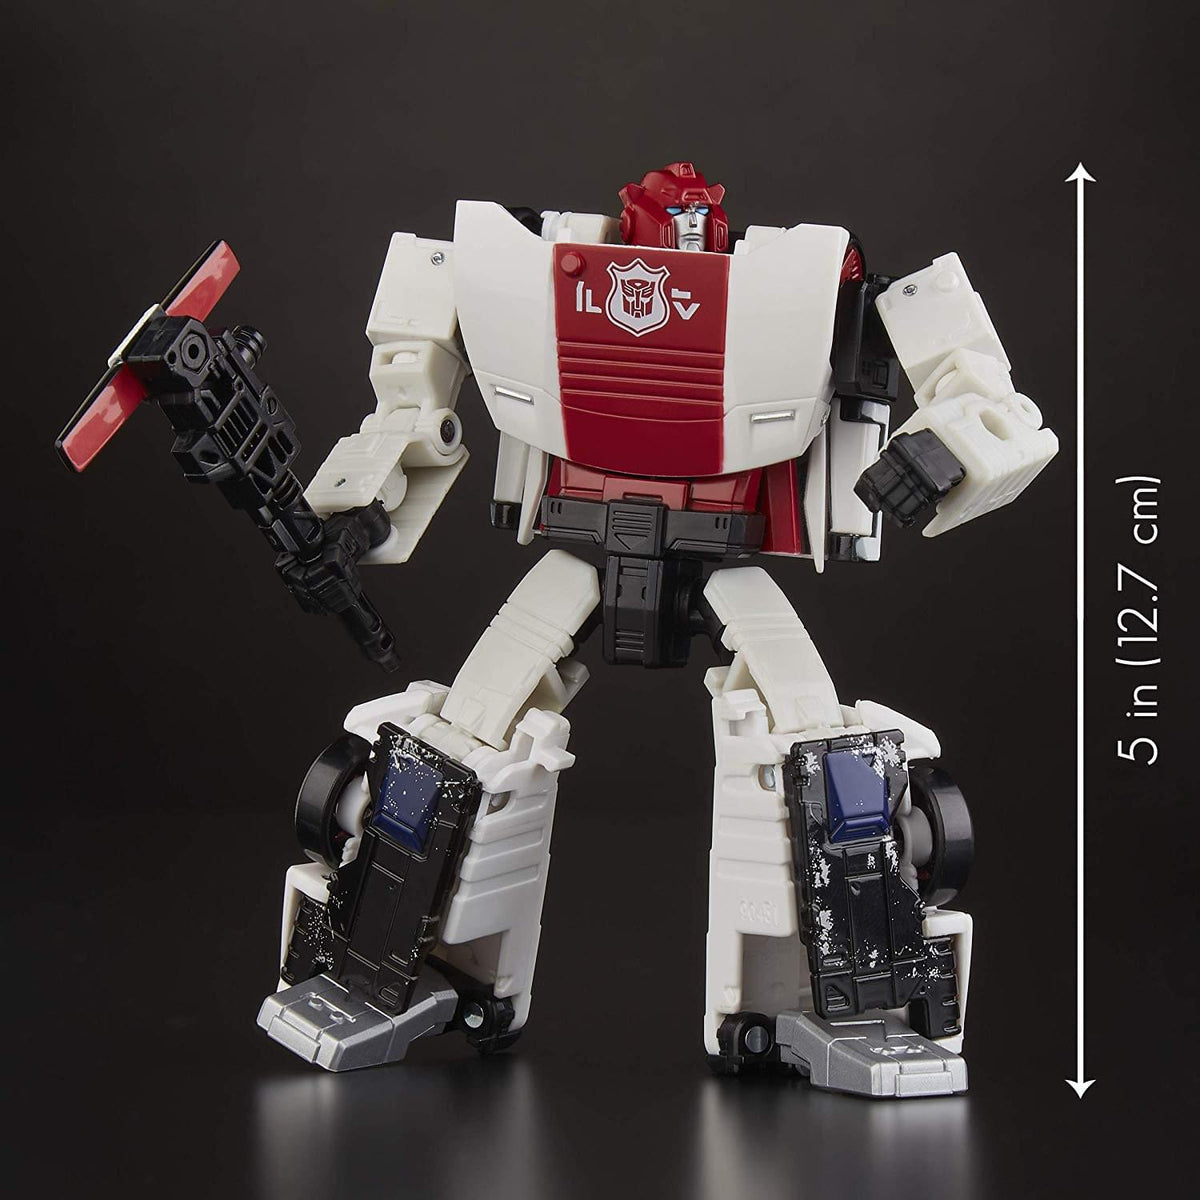 Transformers Generations Siege Deluxe Action Figure | Red Alert